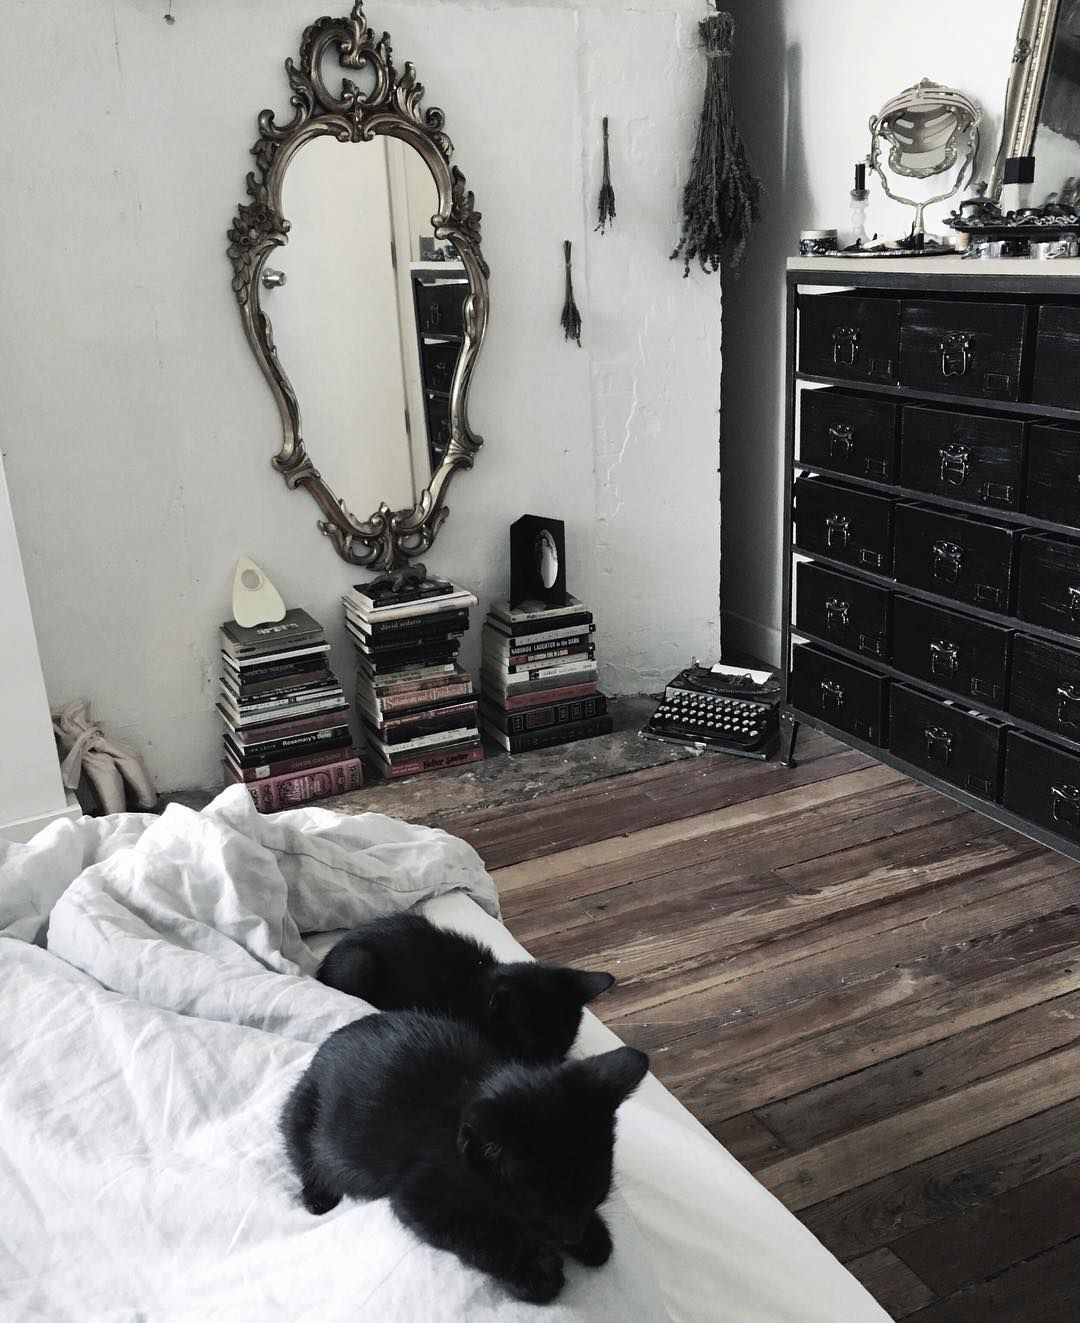 8 127 Likes 32 Comments Aviv Grimm Grimvr On Instagram Left Home For A Few Days And Already Missing These Litt Goth Home Decor Gothic Room Gothic House